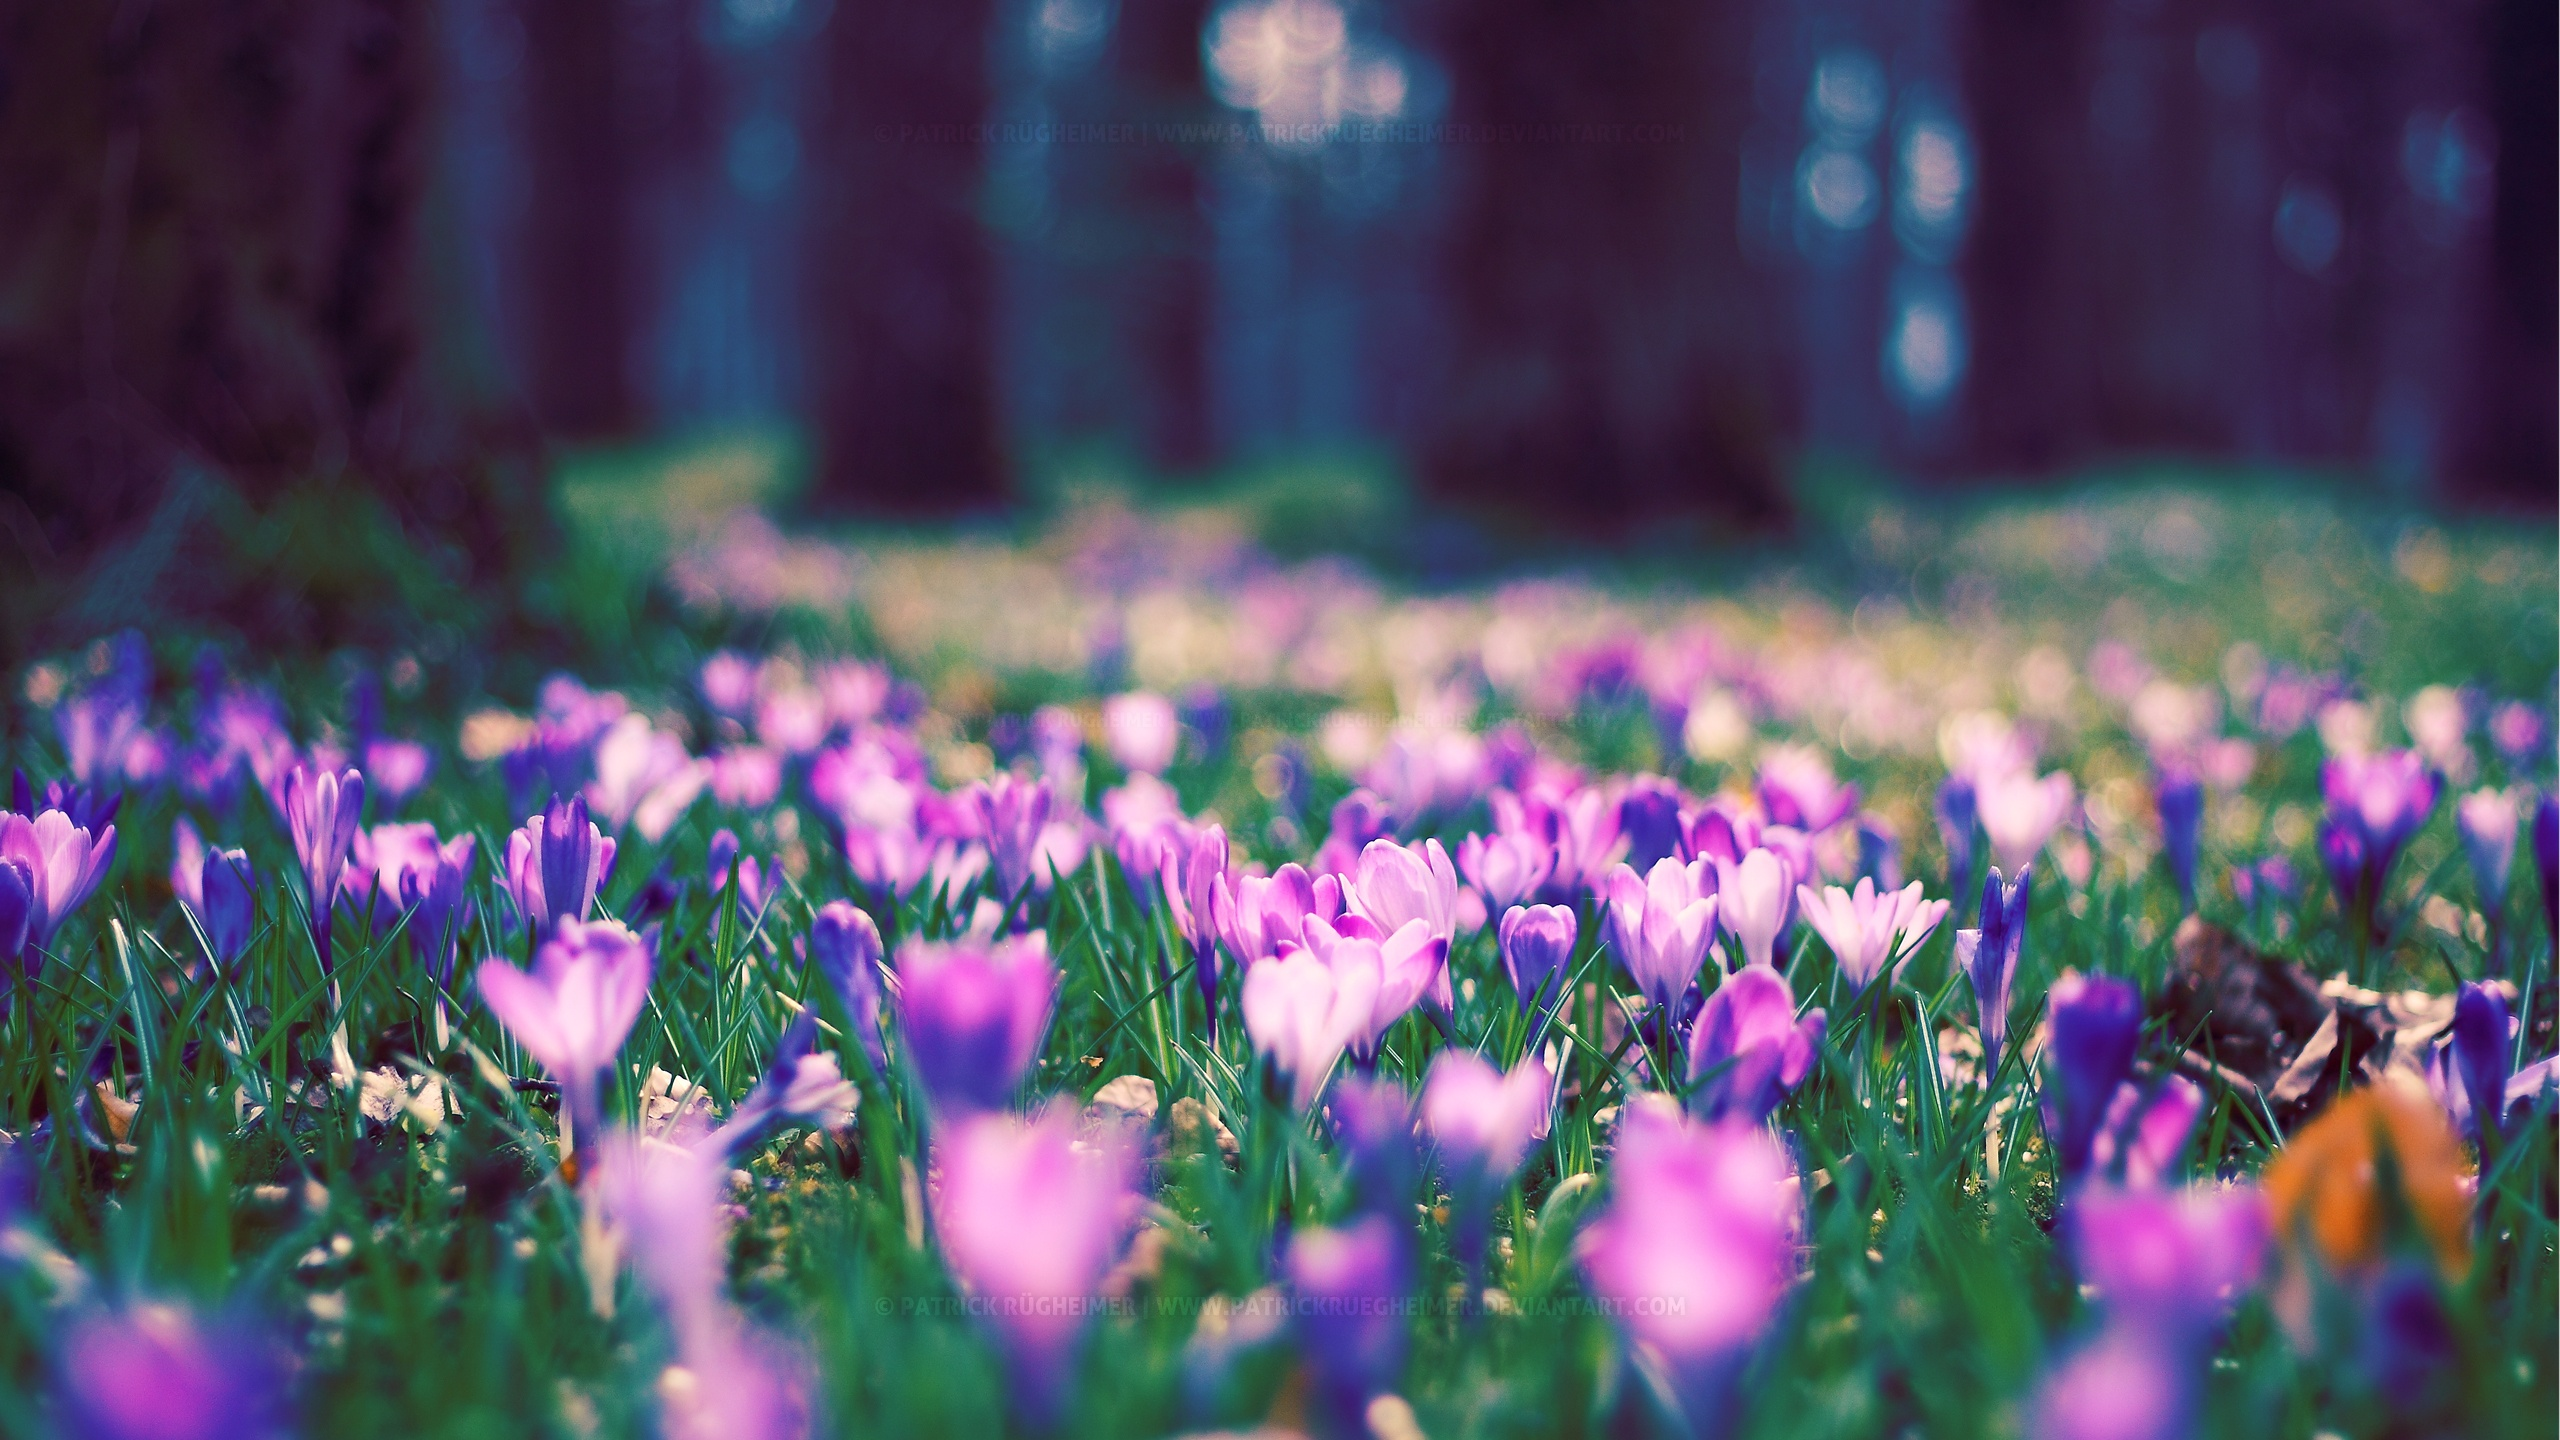 Spring flower park wallpapers in jpg format for free download spring flower park wallpapers mightylinksfo